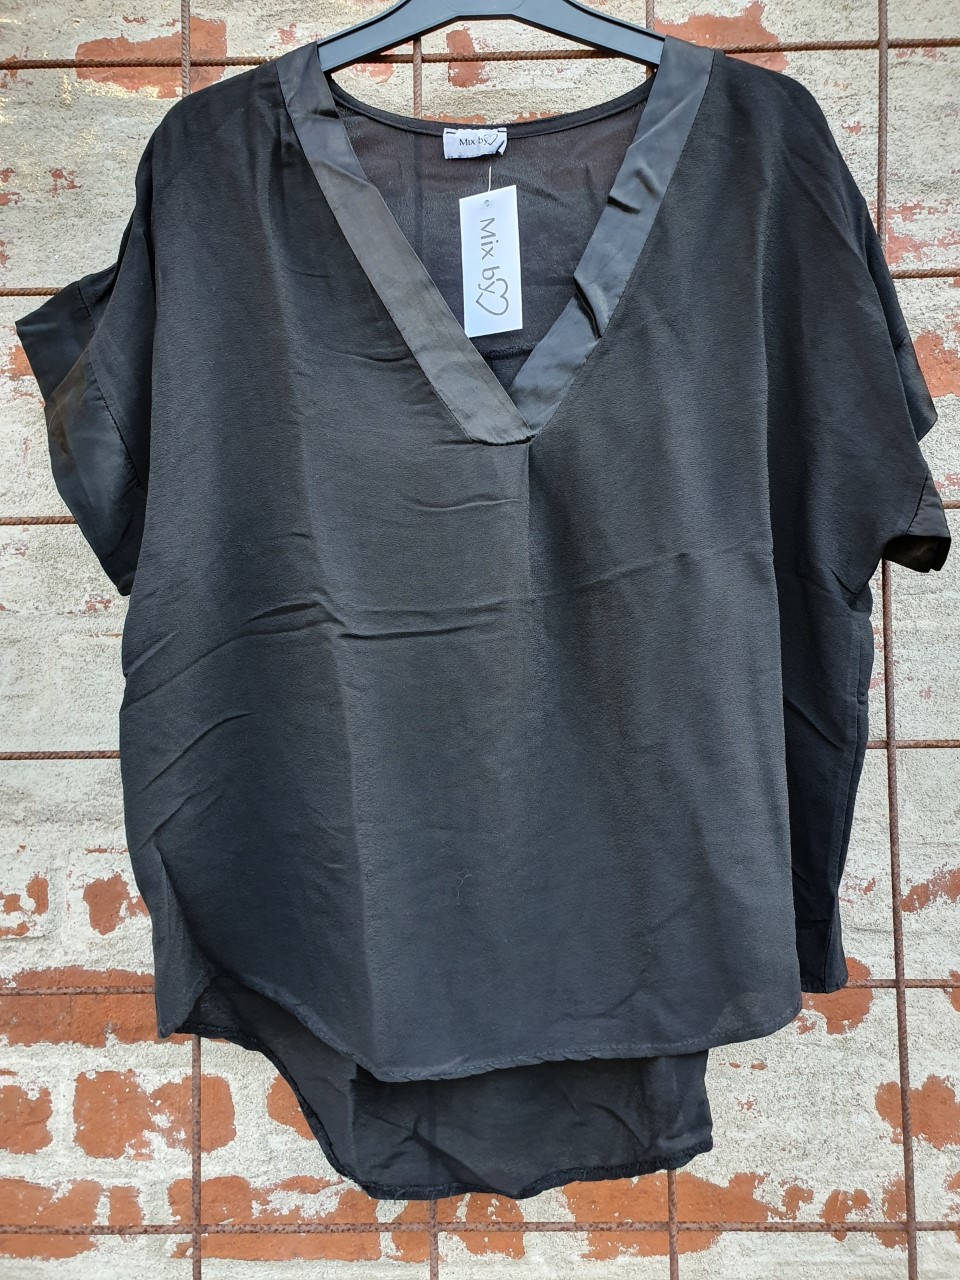 Blus med satinkant, svart - Mix by Heart